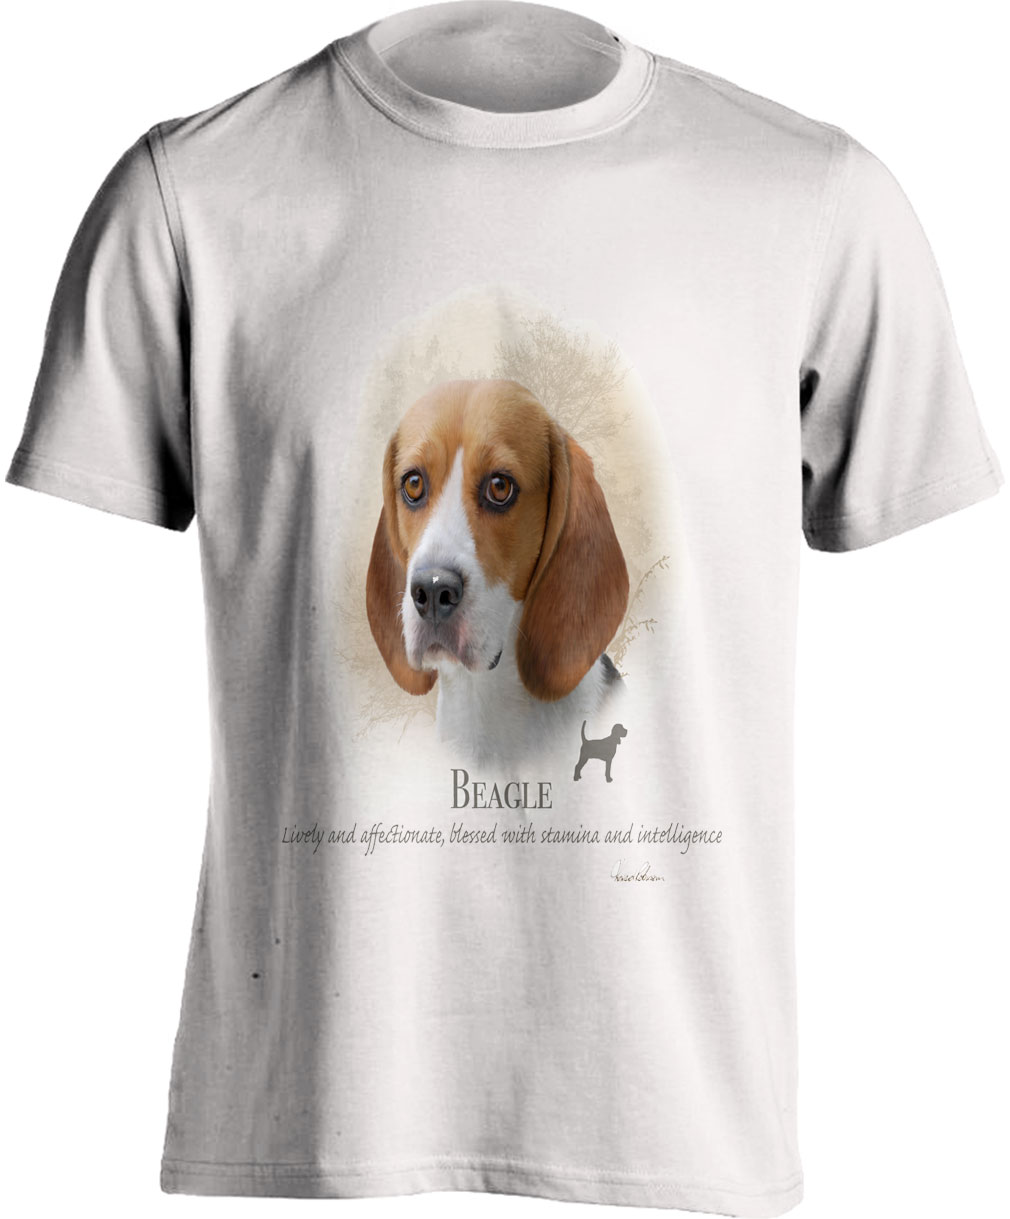 Beagle Dog T Shirt